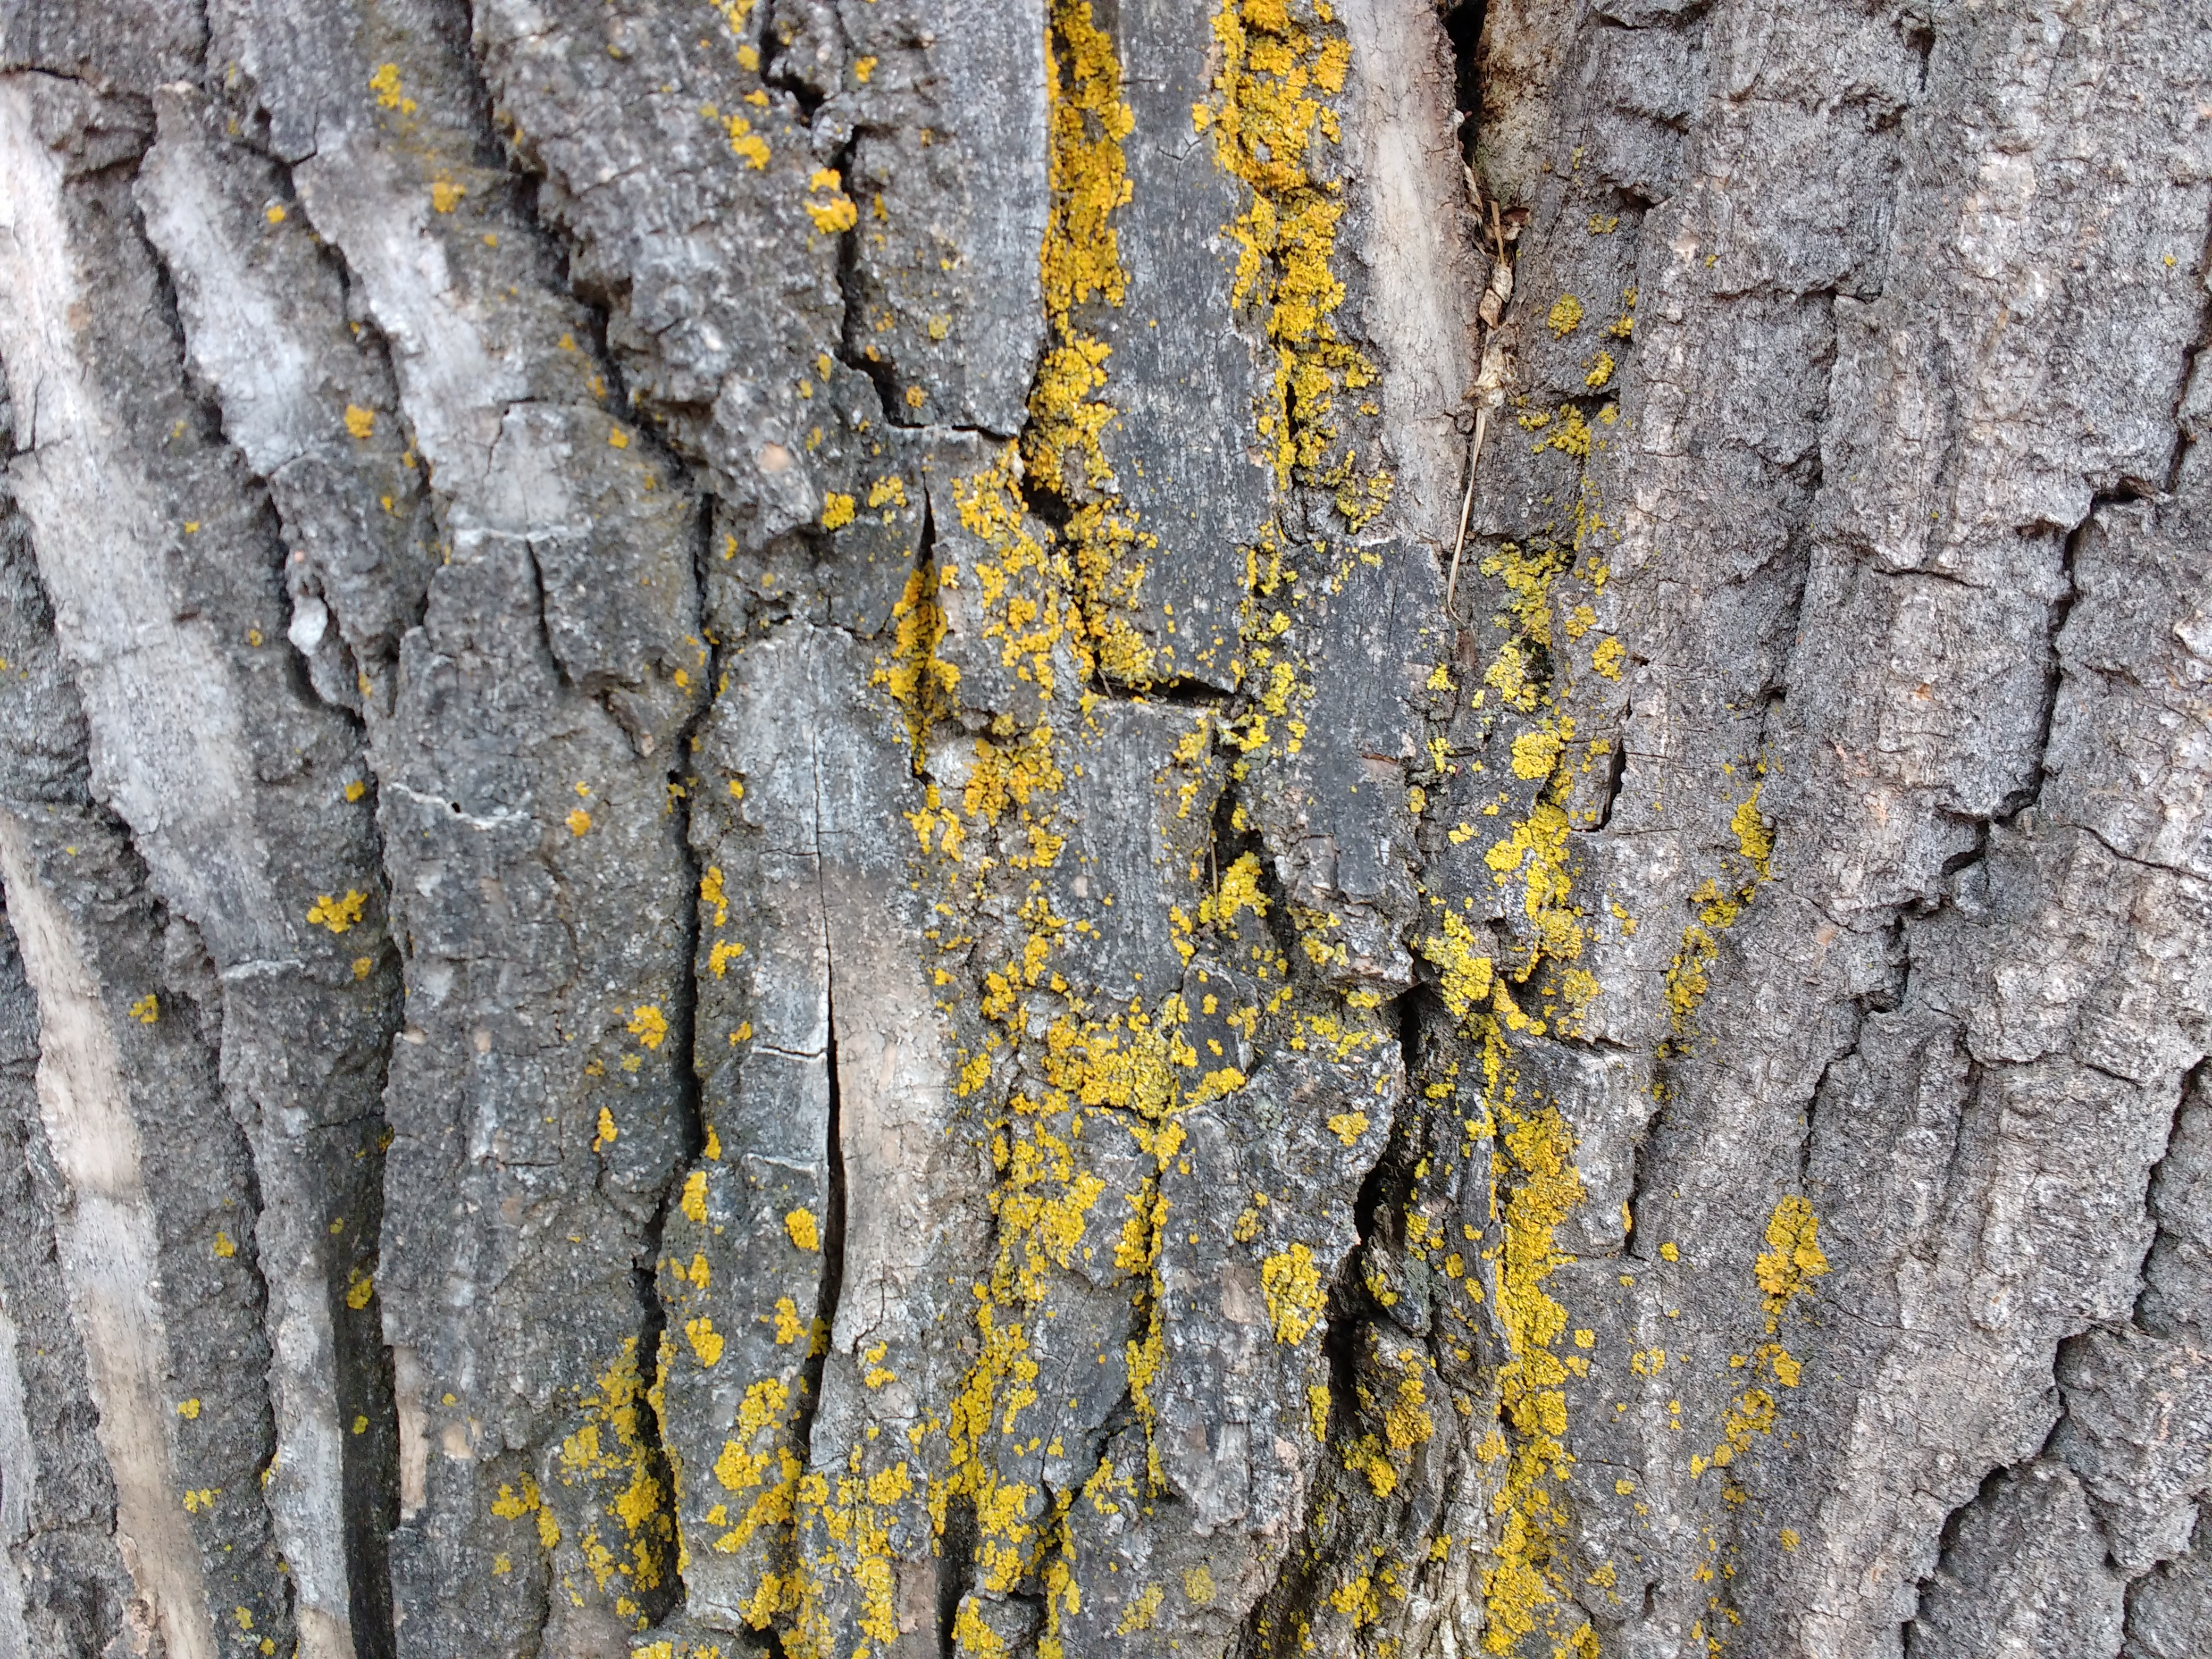 Yellow Lichen on Bark of Tree Trunk Picture.